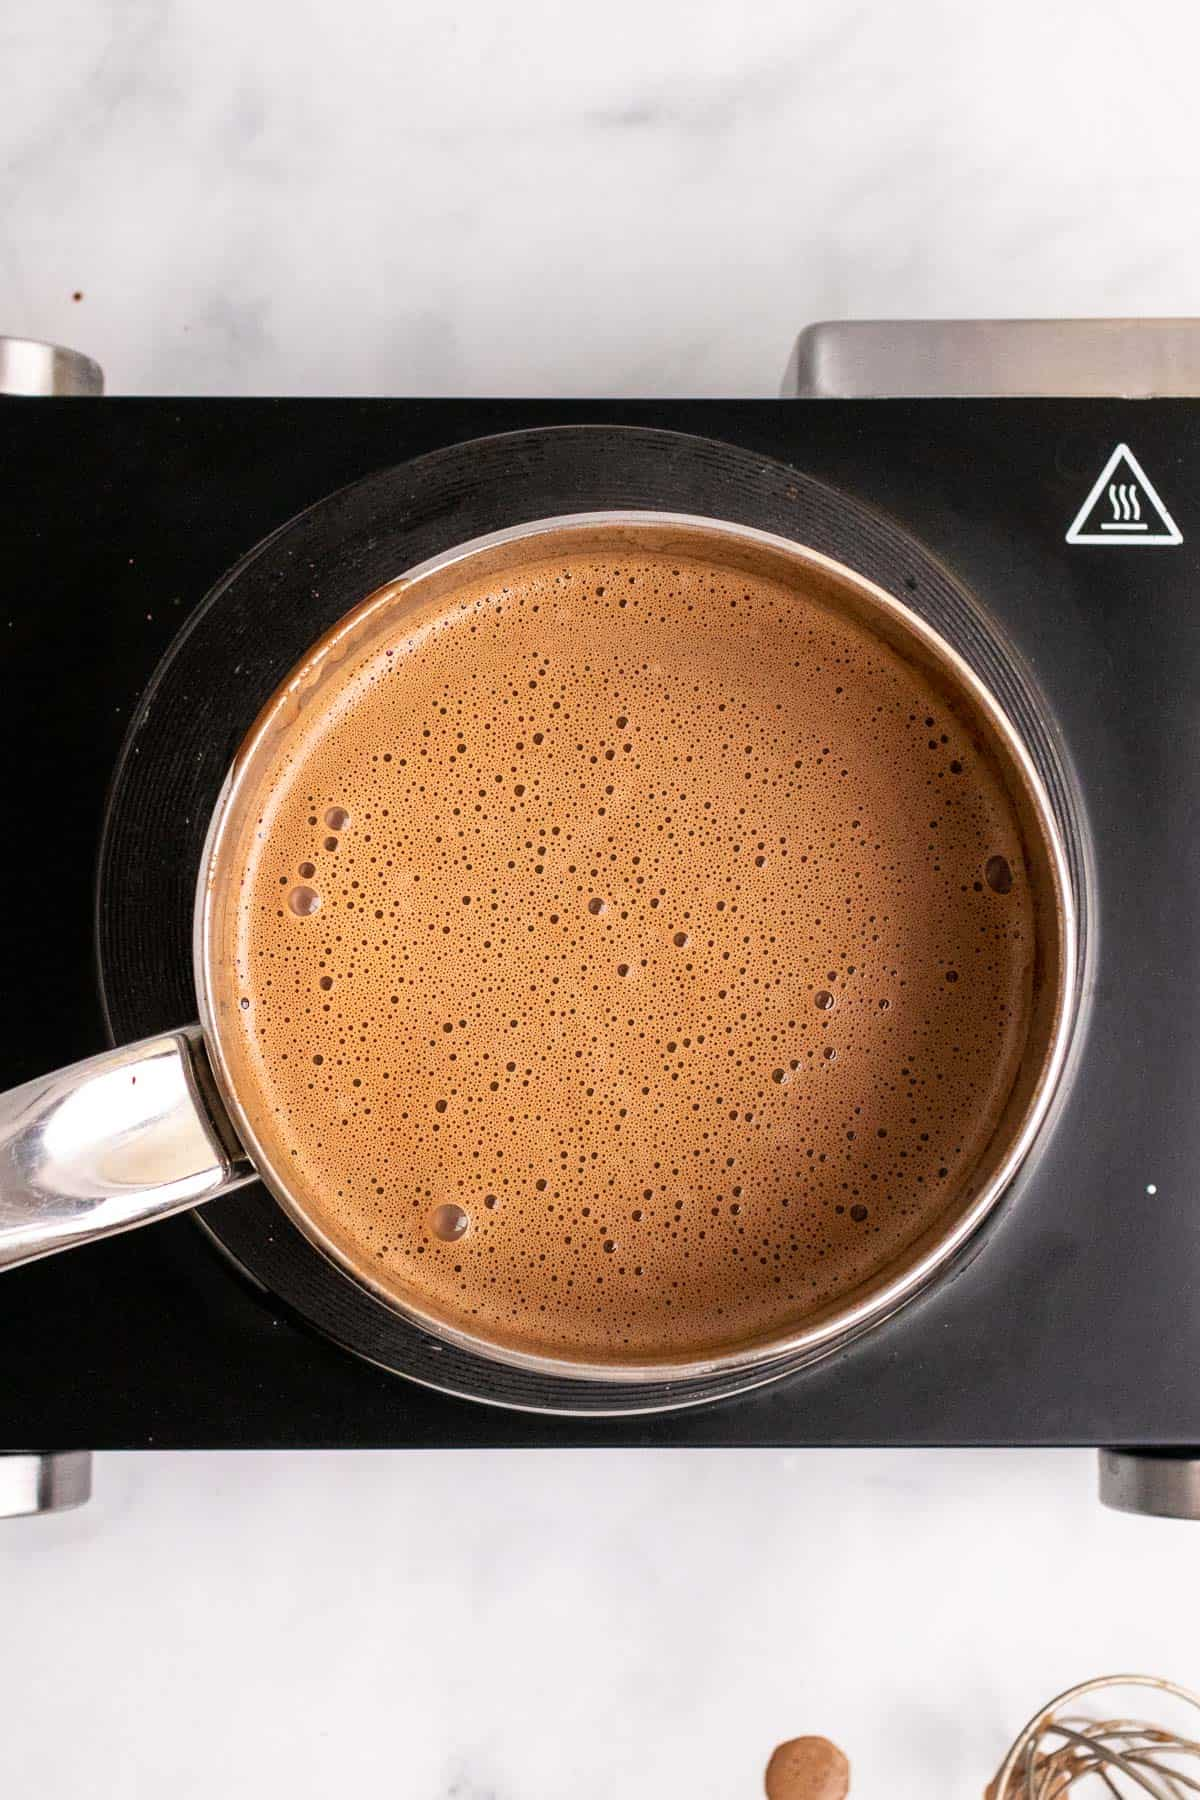 Steam hot chocolate in the saucepan, ready to serve